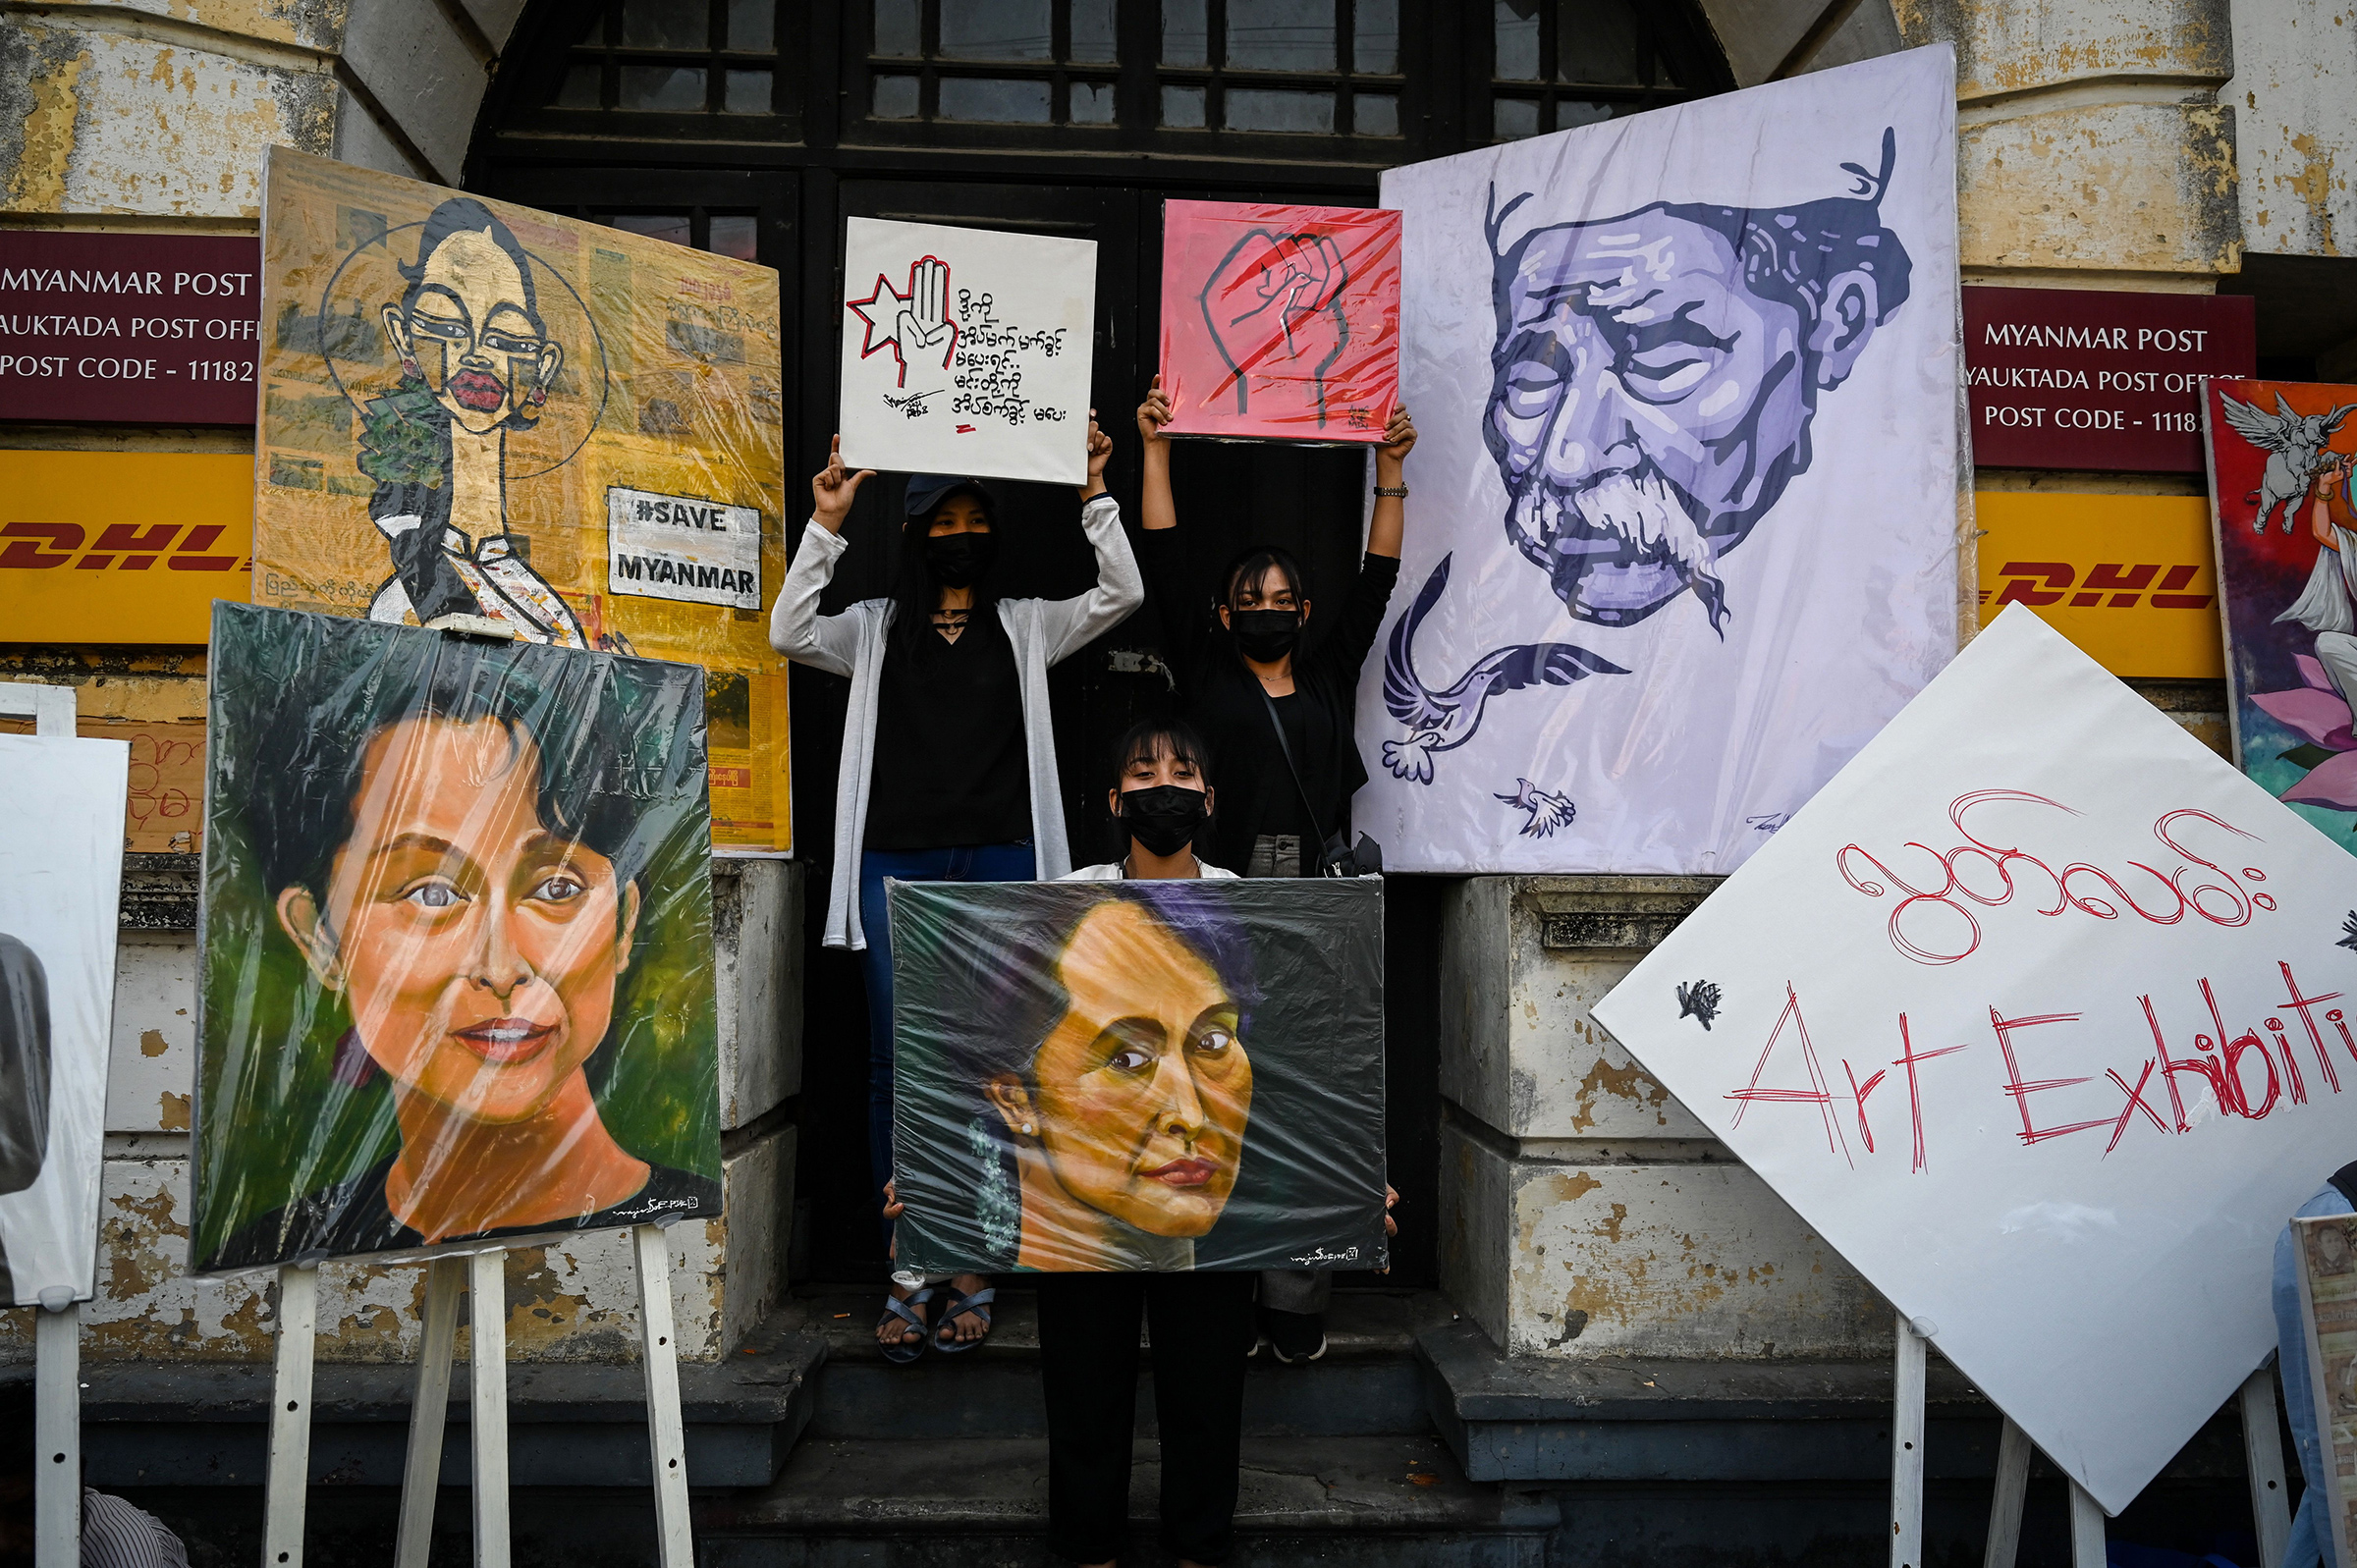 Protesters stand next to portraits of Aung San Suu Kyi and other artwork during a demonstration against the military coup in Yangon on Feb. 9